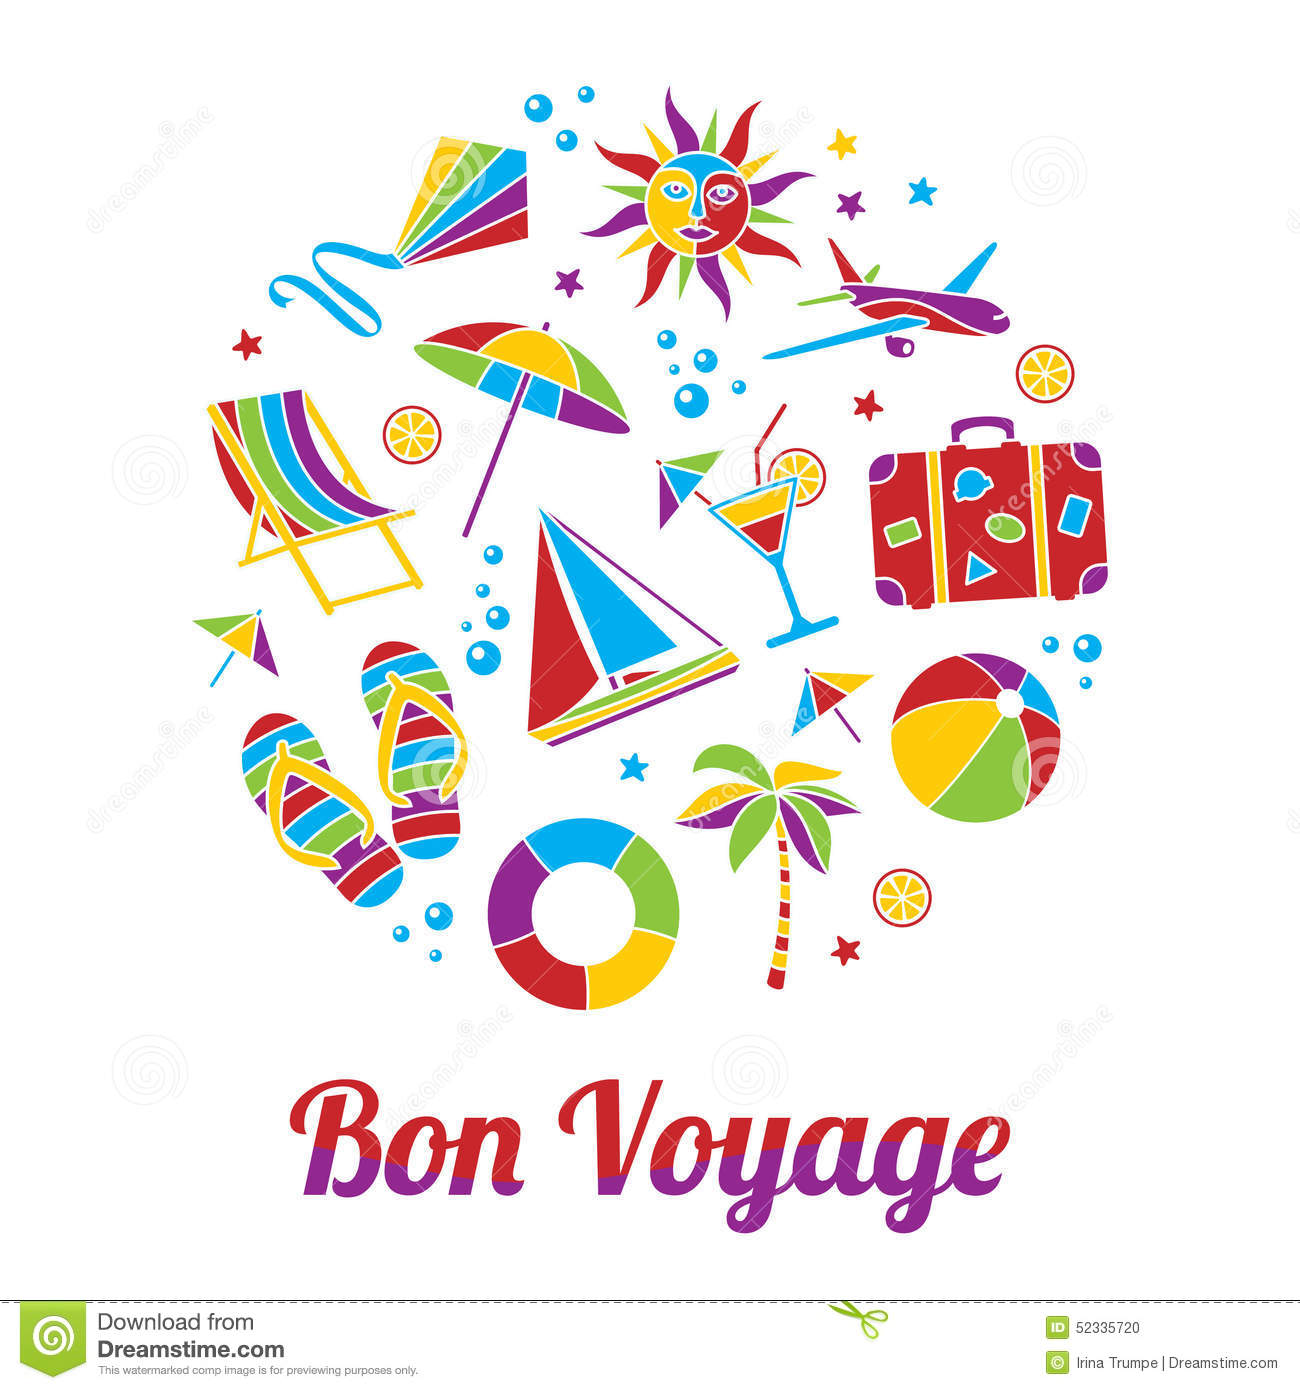 Bon Voyage Stock Photos, Images, & Pictures - 511 Images